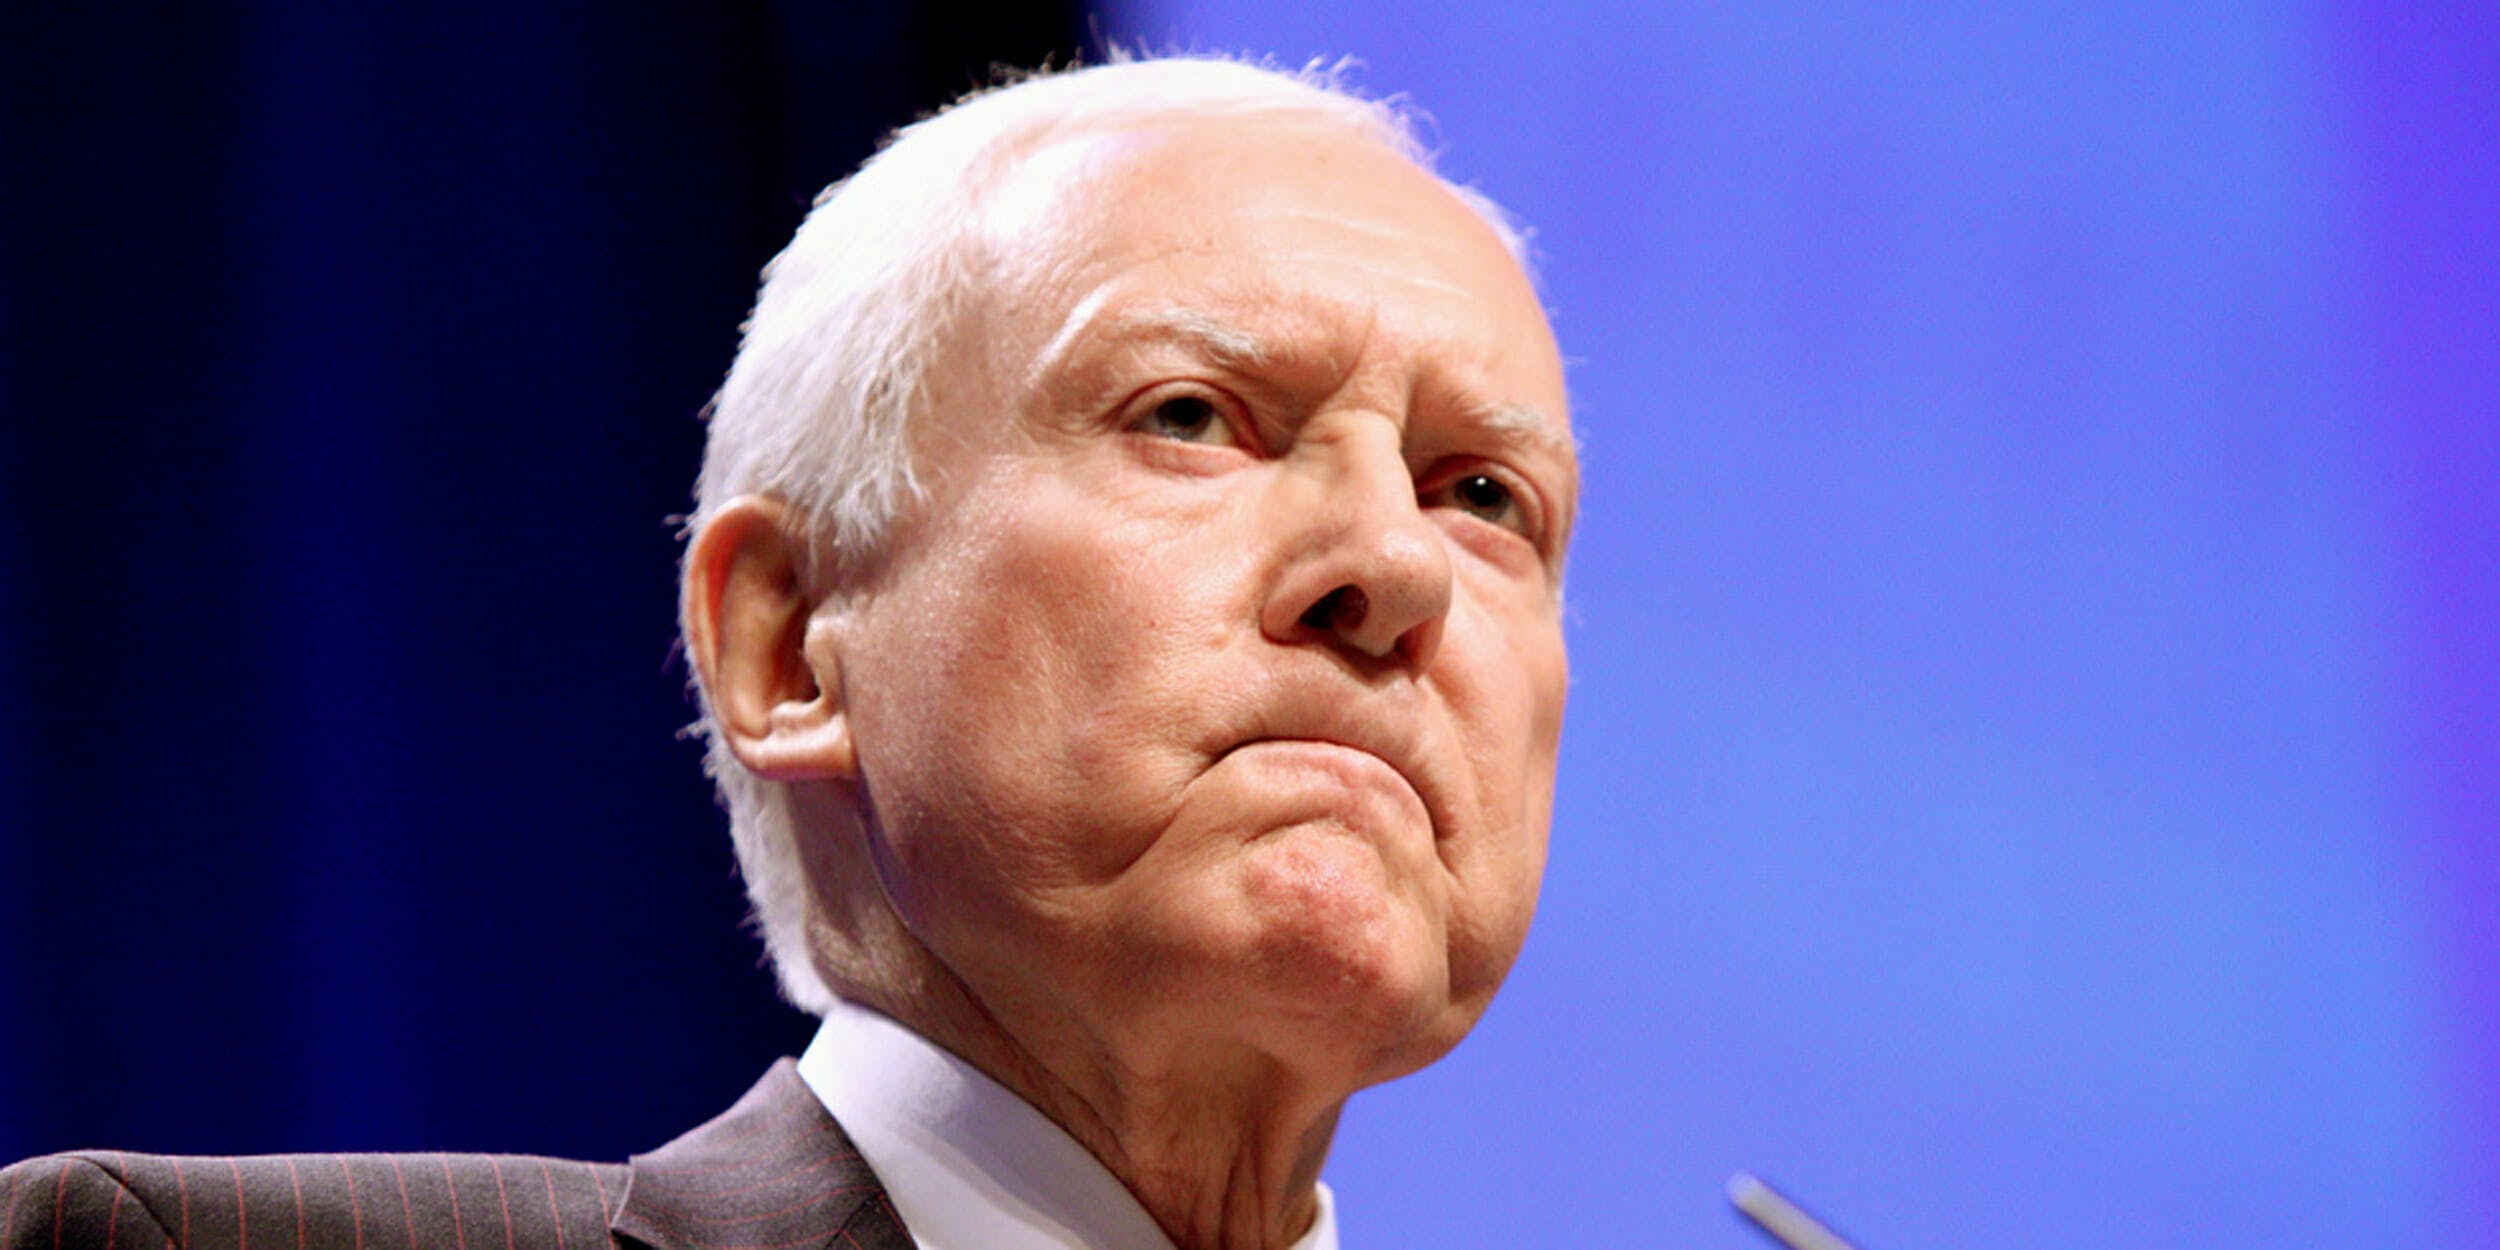 Orrin Hatch announced on Tuesday that he would not seek reelection in 2018.